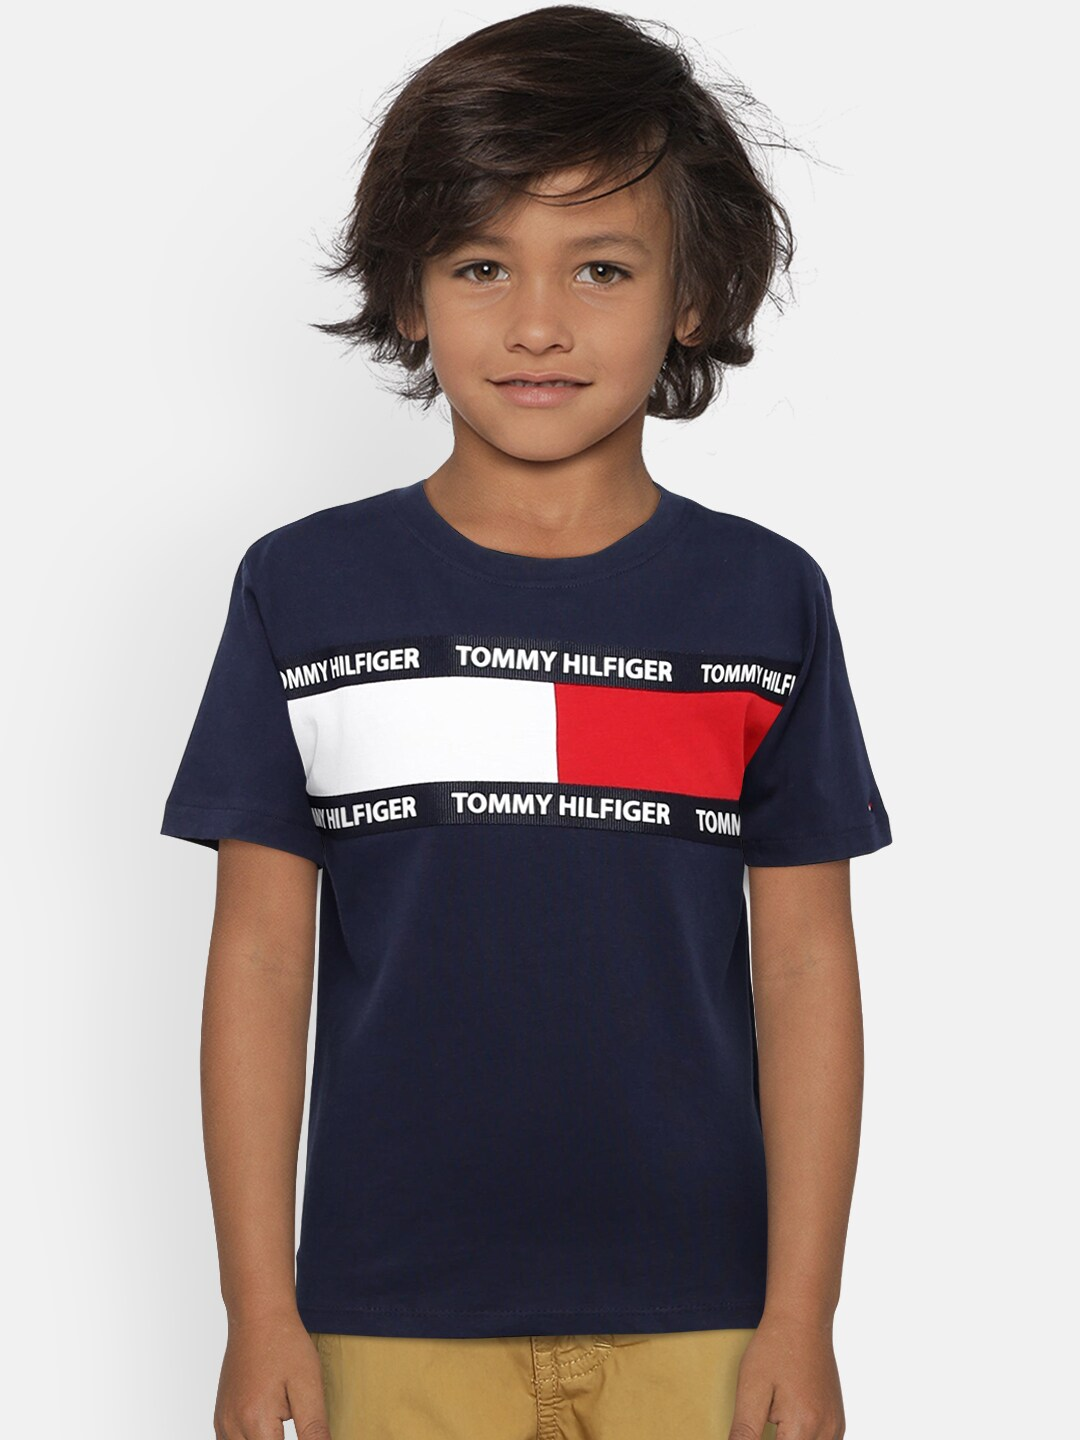 84373701 Boys T shirts - Buy T shirts for Boys online in India